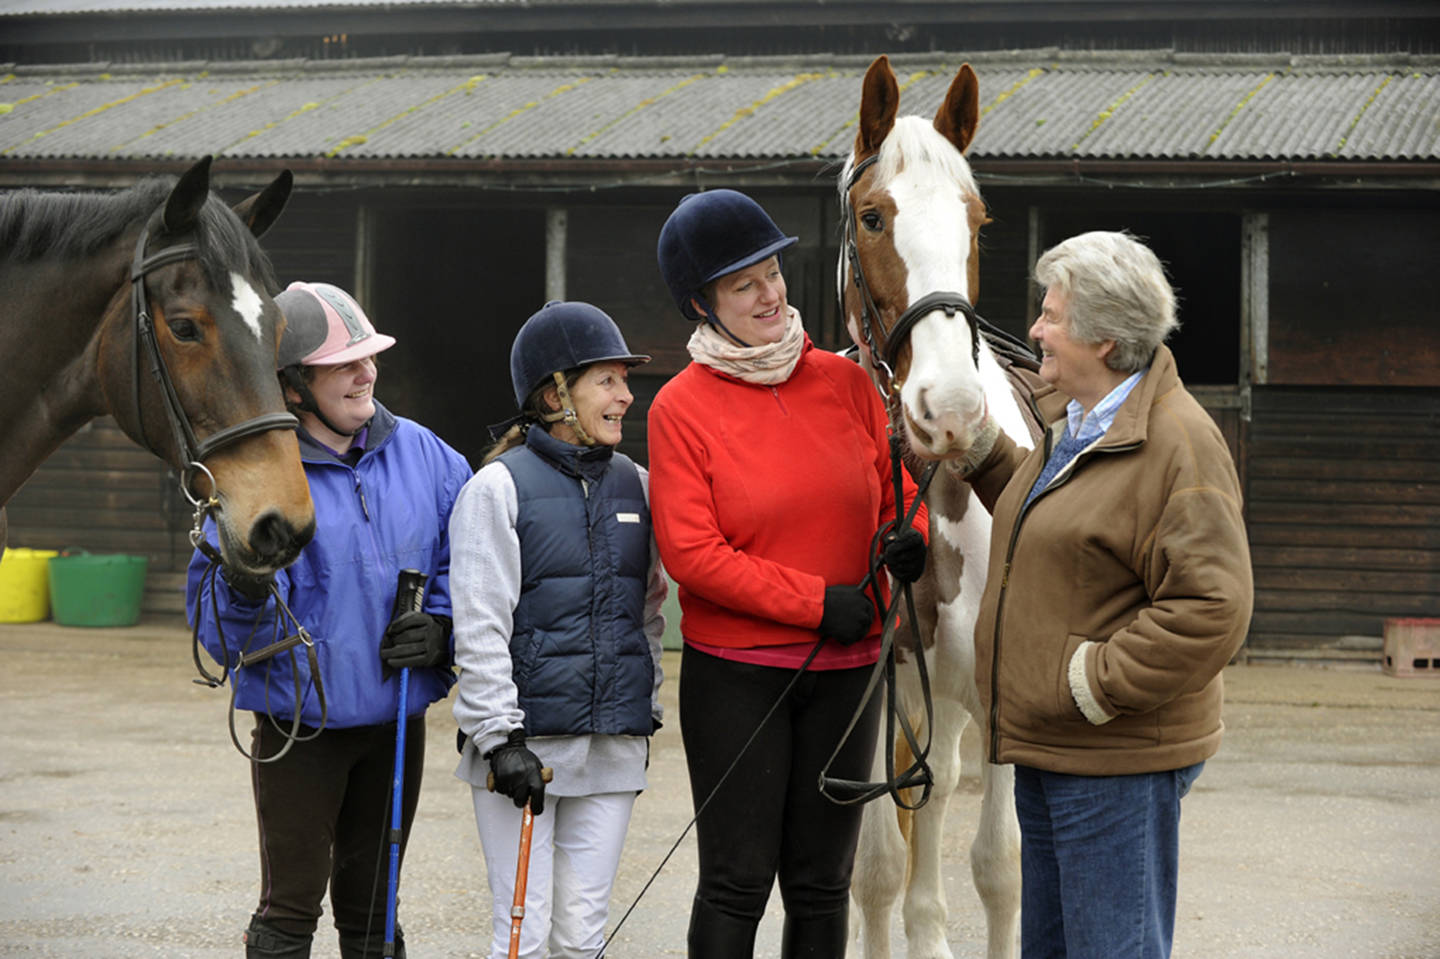 Group of disabled riders in paddock with two horses